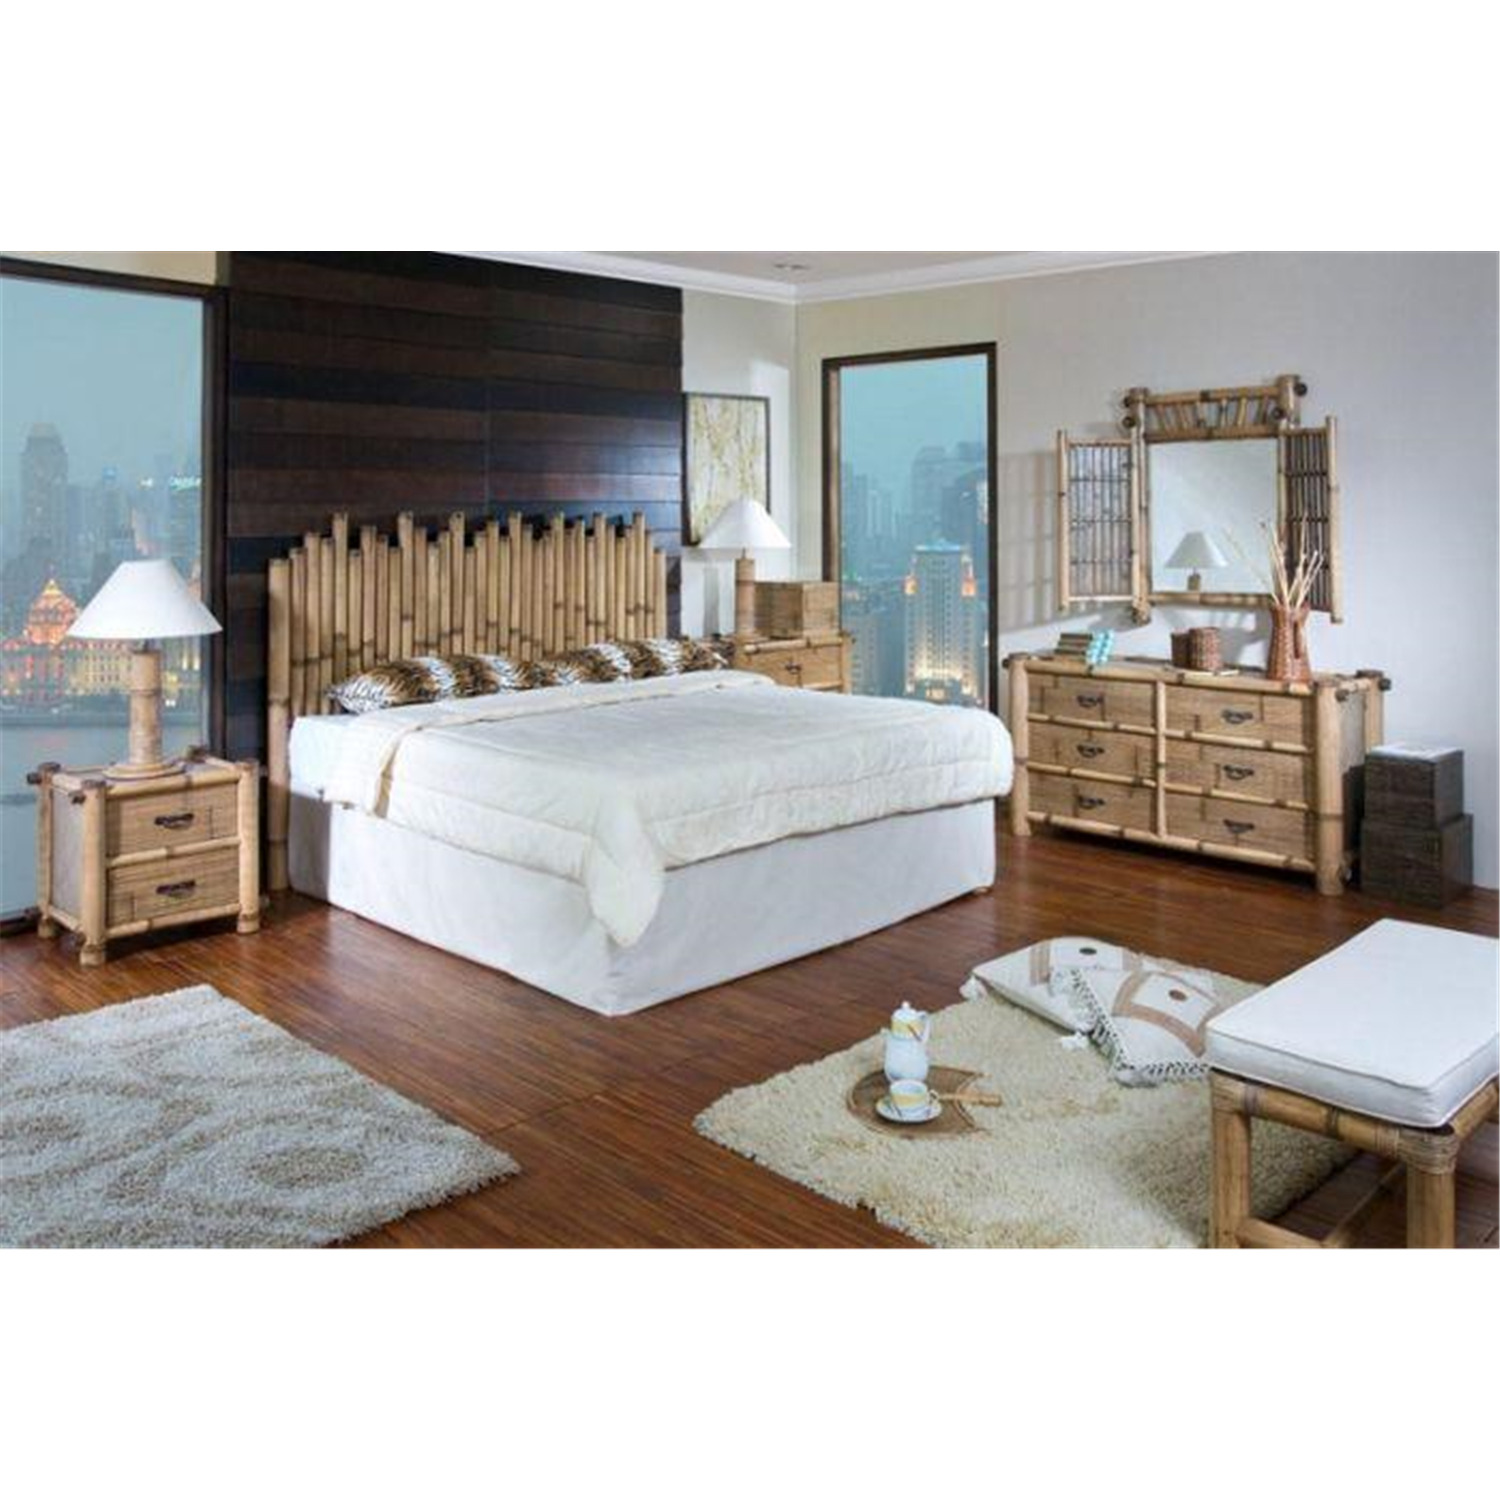 hospitality rattan havana bamboo bedroom set by oj commerce 4pcset 712